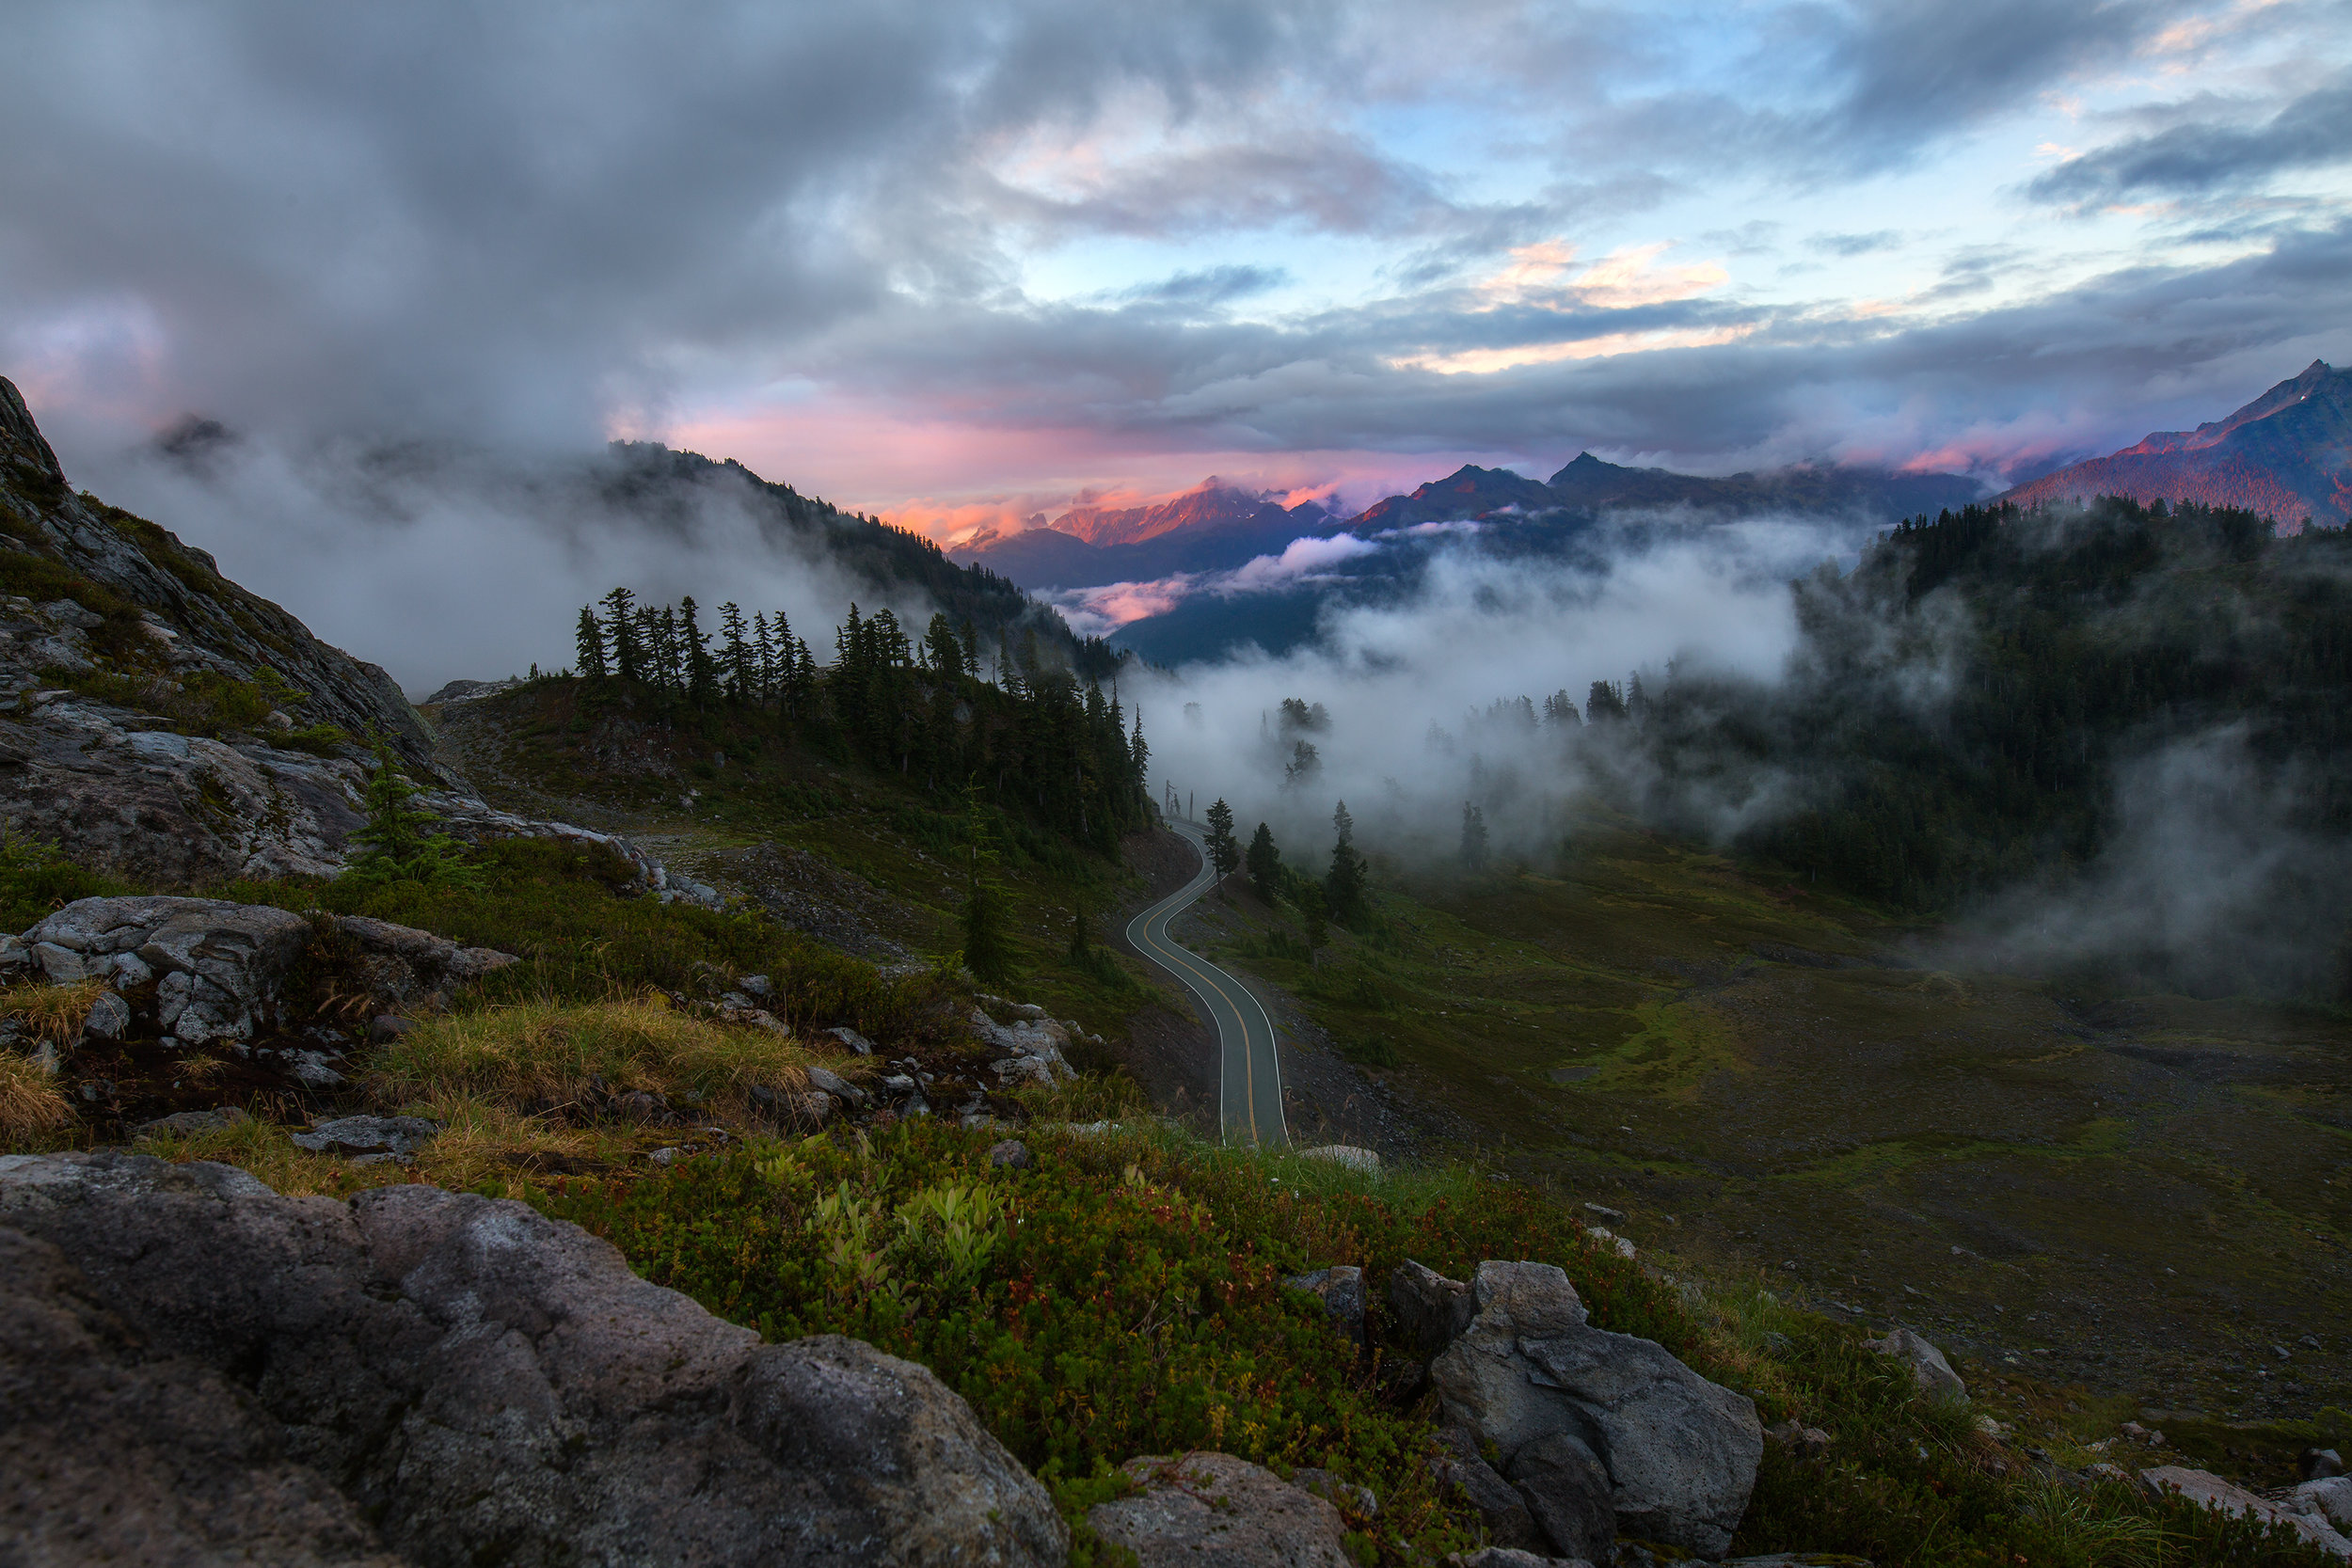 Looking north east from the Artist Point area in Mount Baker-Snoqualmie National Forest.